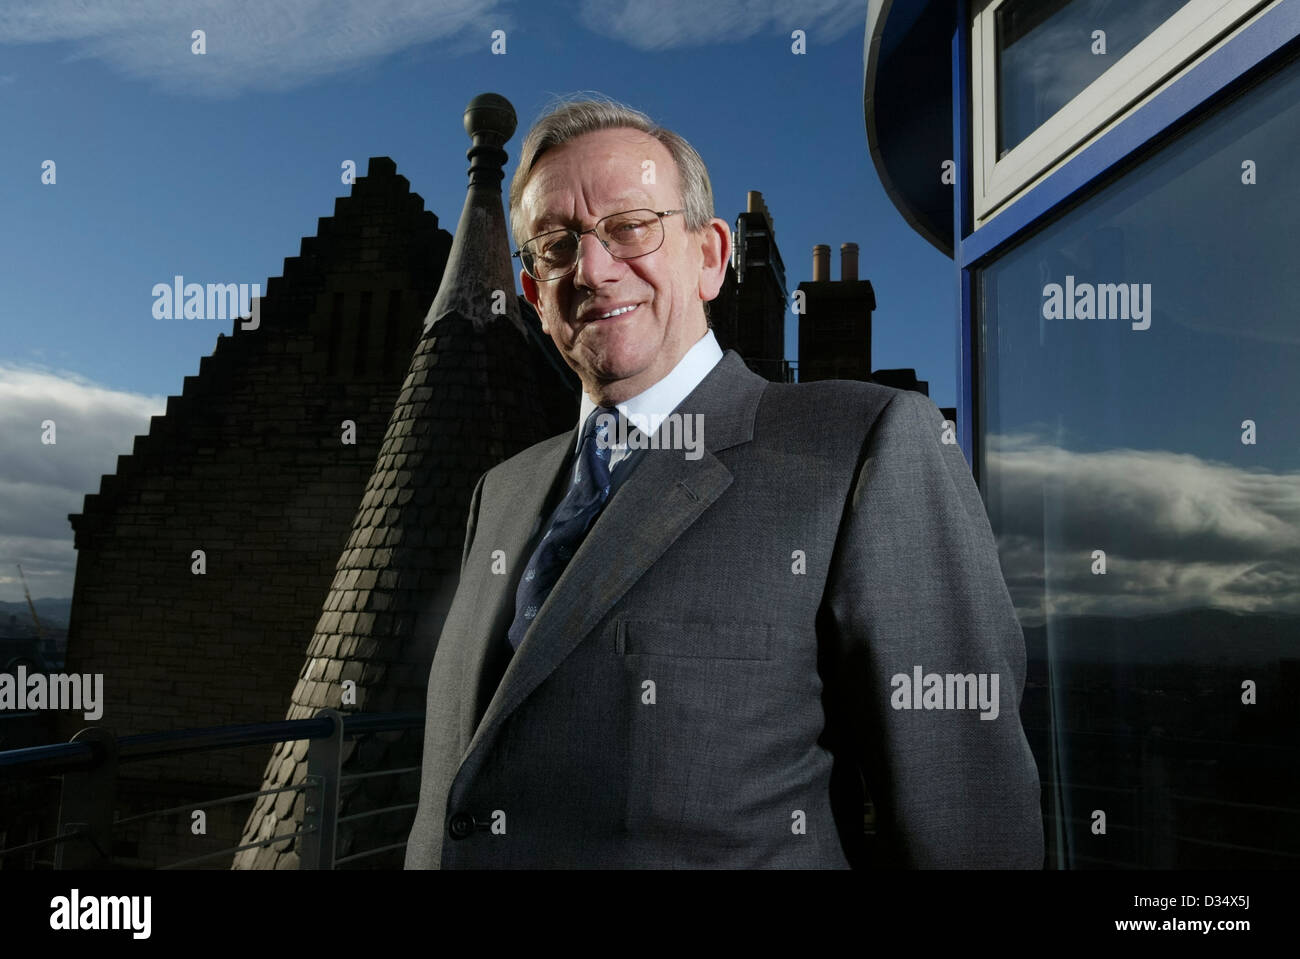 Sir Kenneth Morrison CBE is the Life President and former chairman of Morrisons (Wm Morrison Supermarkets PLC). - Stock Image